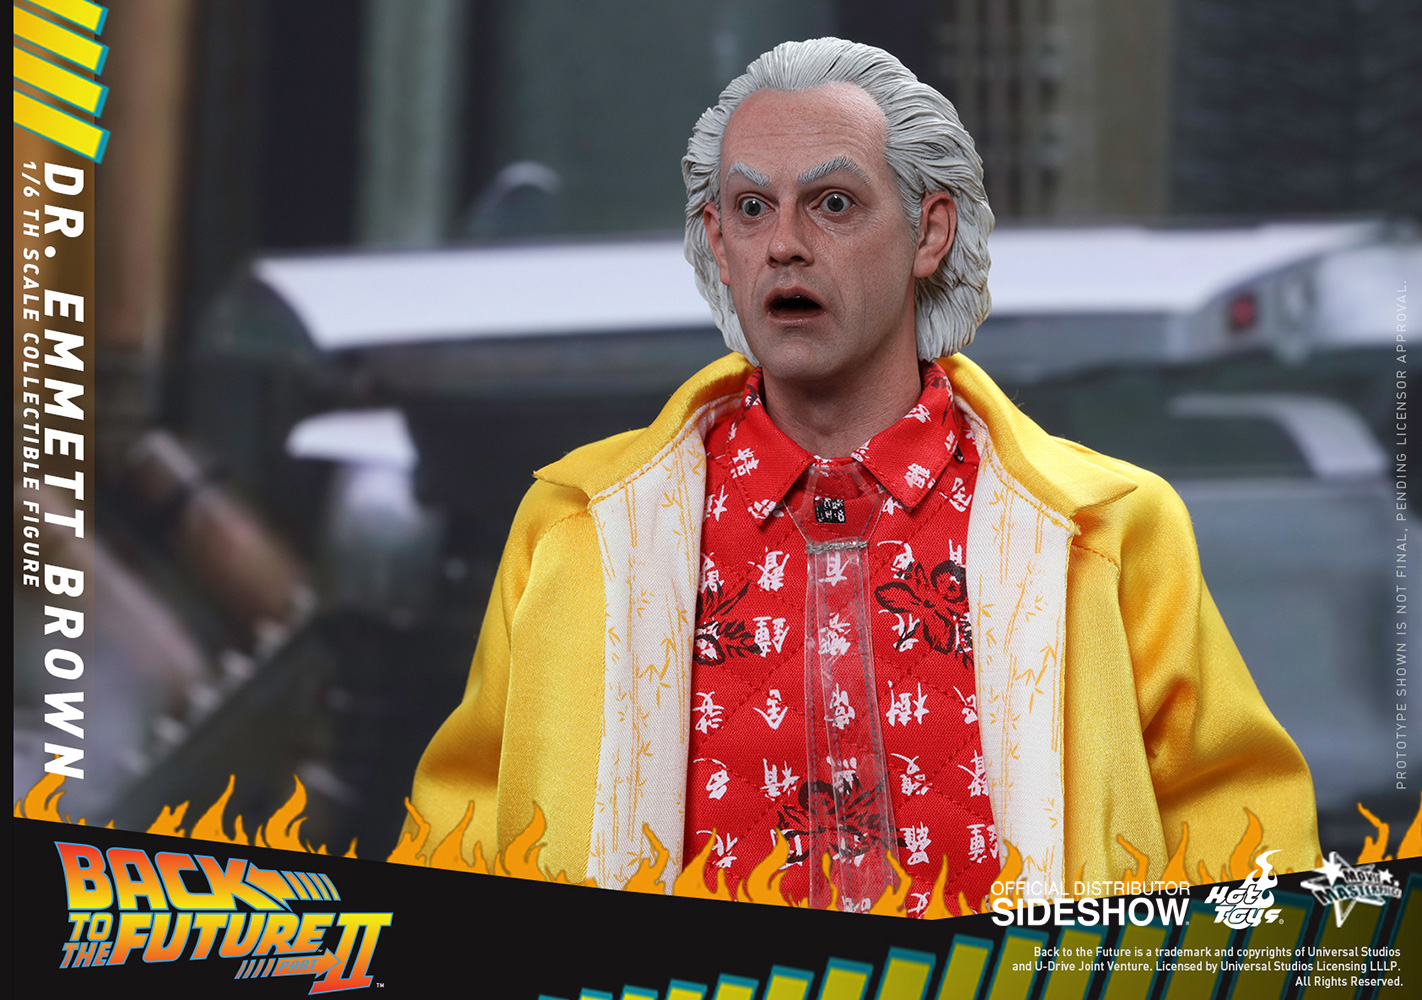 Link a back-to-the-future-2-dr-emmett-brown-sixth-scale-hot-toys-902790-06